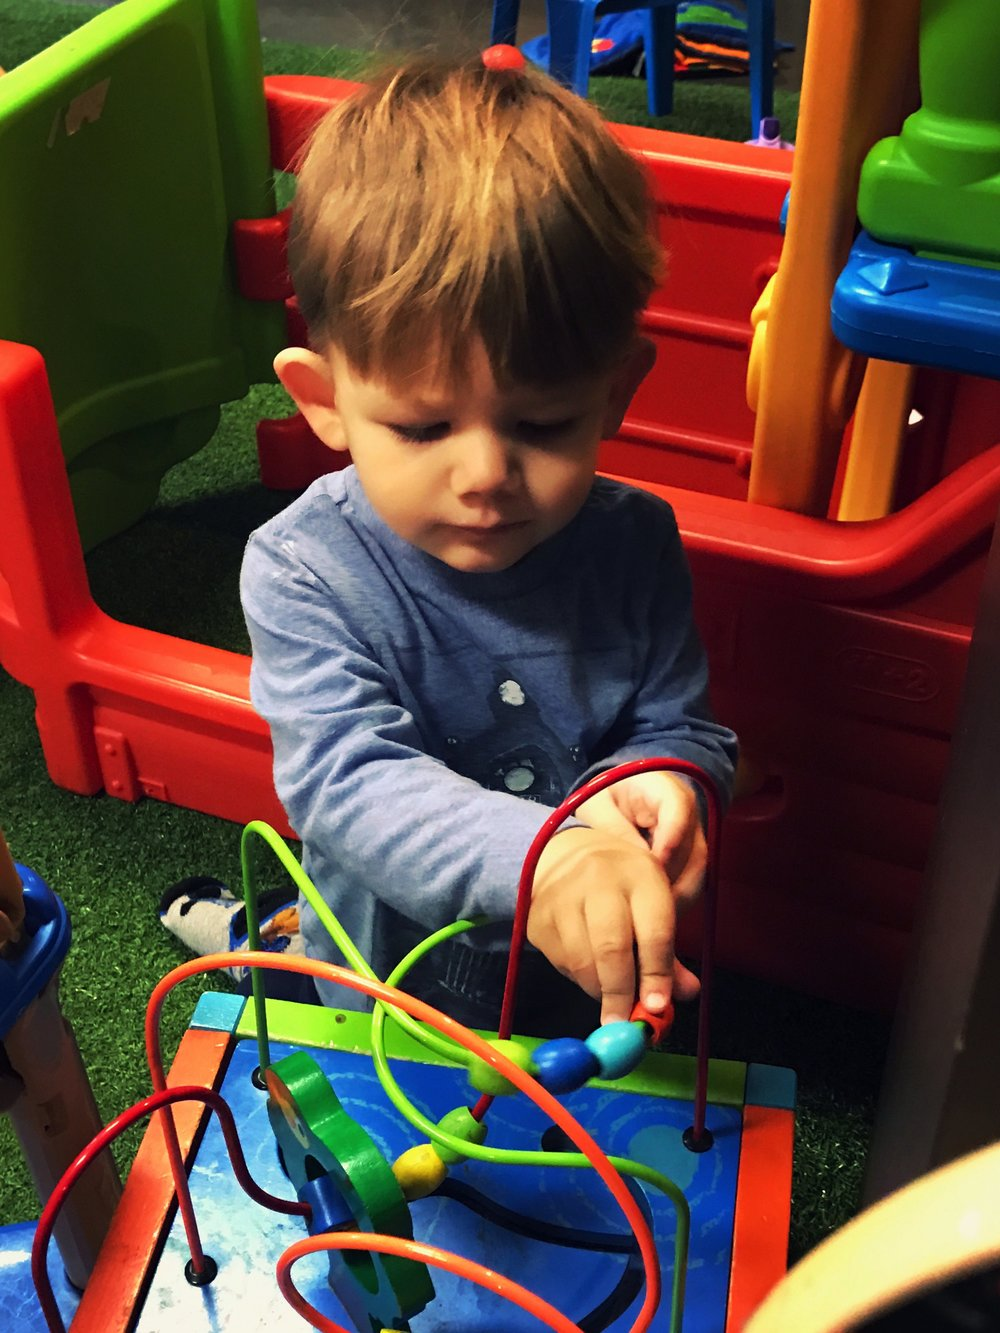 There were lots of new and fun toys to explore, climb and ride at the Play Cafe.